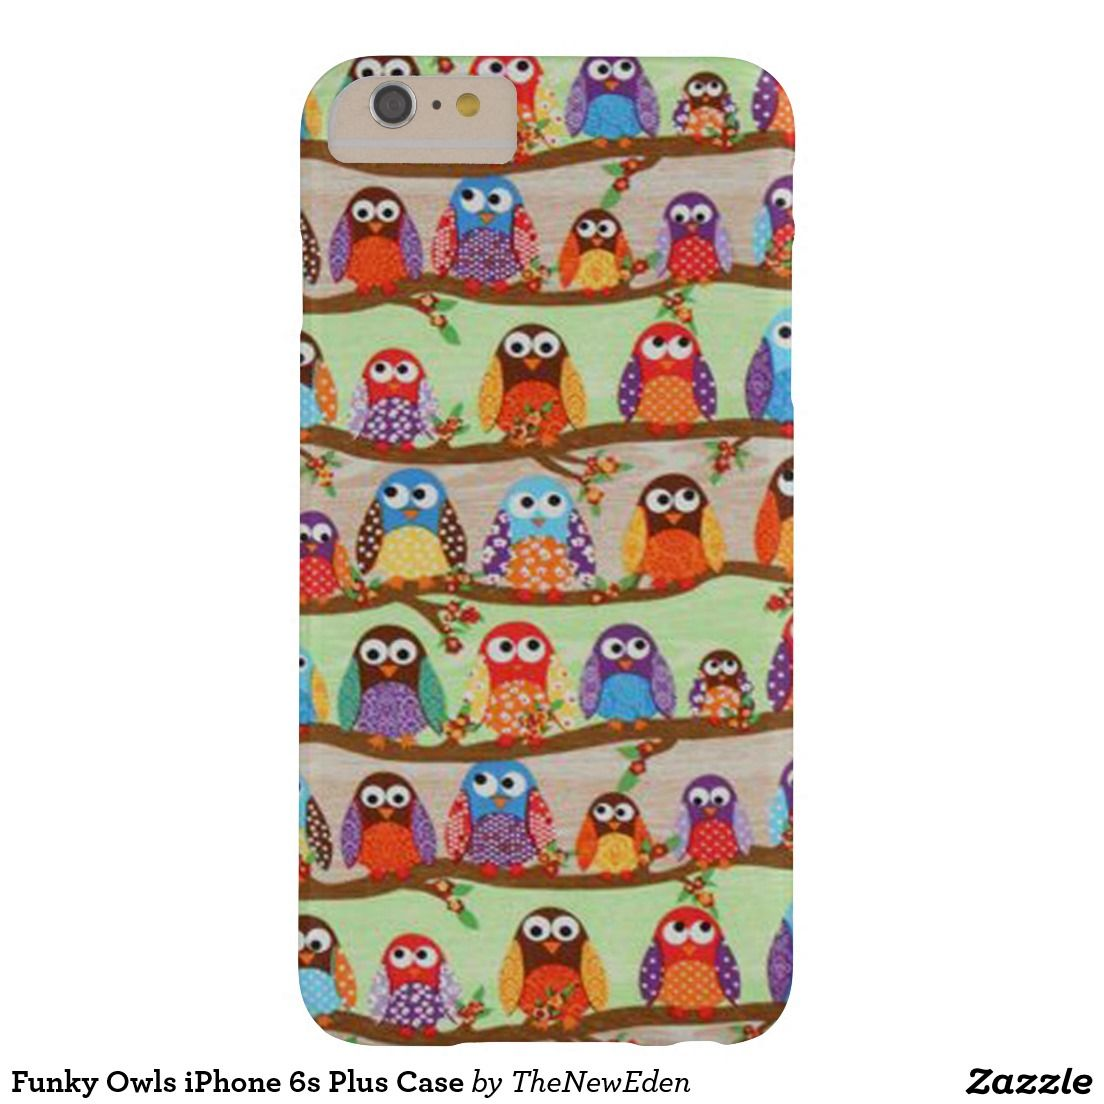 Funky Owls iPhone 6s Plus Case